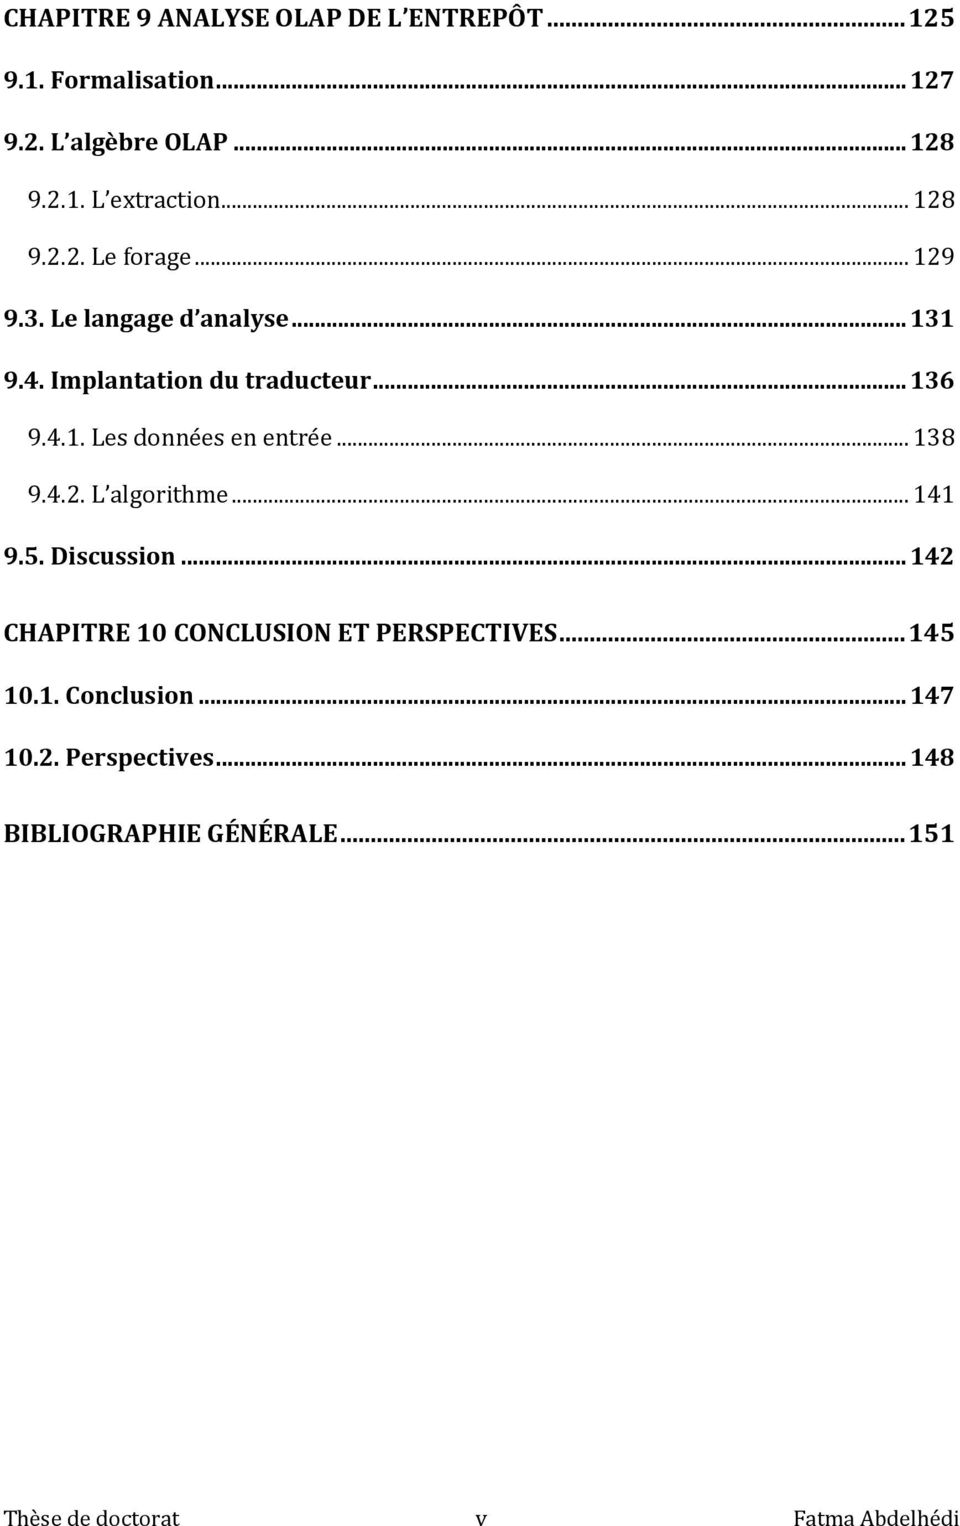 .. 138 9.4.2. L algorithme... 141 9.5. Discussion... 142 CHAPITRE 10 CONCLUSION ET PERSPECTIVES... 145 10.1. Conclusion.